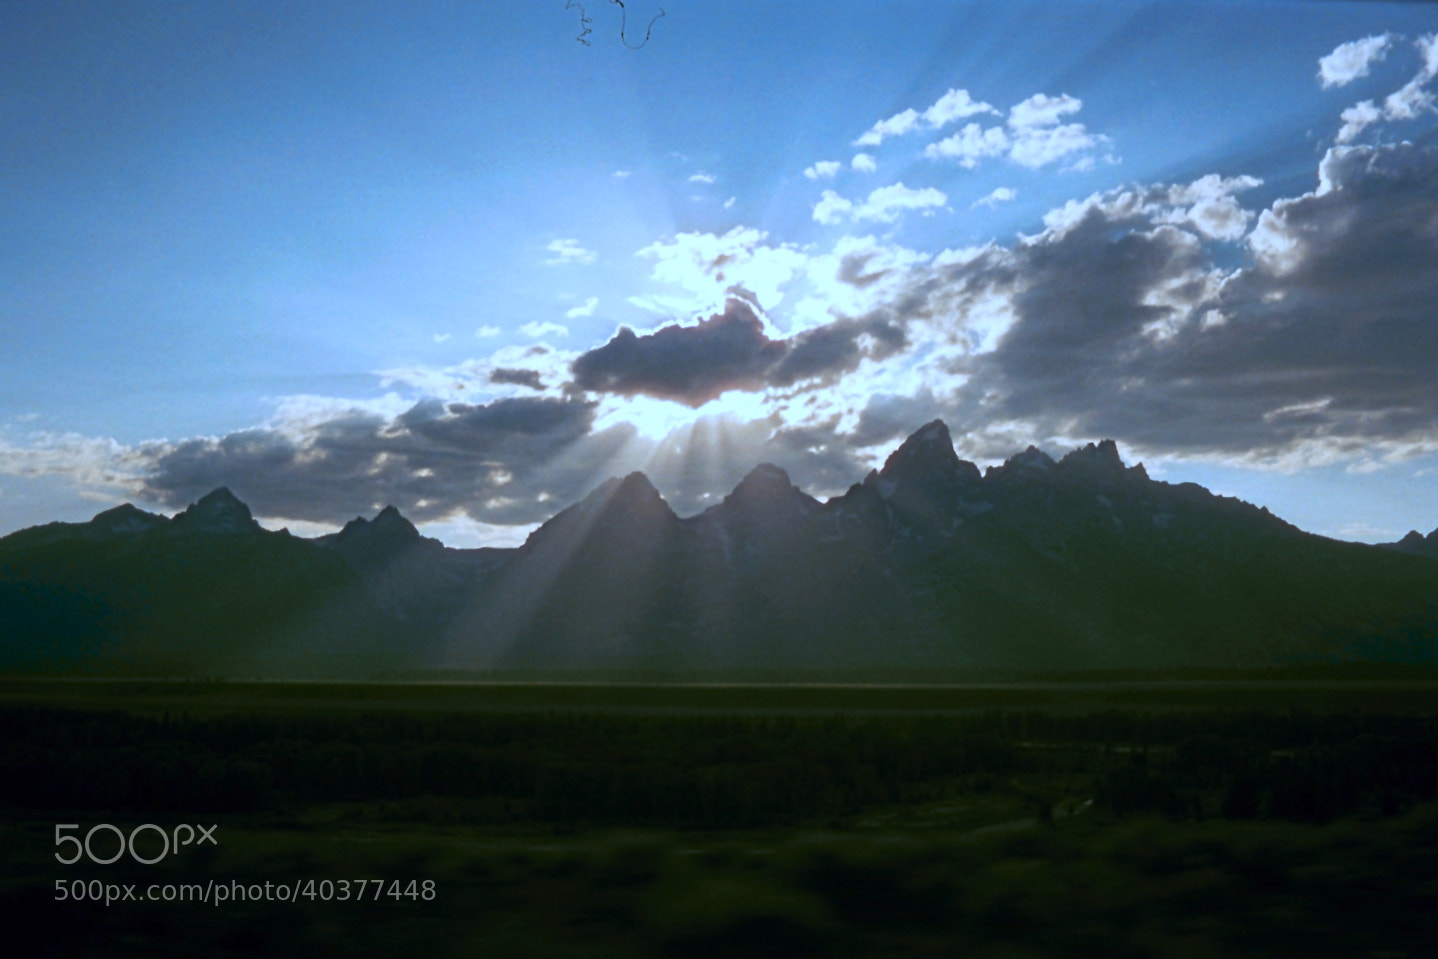 Photograph The Tetons by Aiken Fisher on 500px